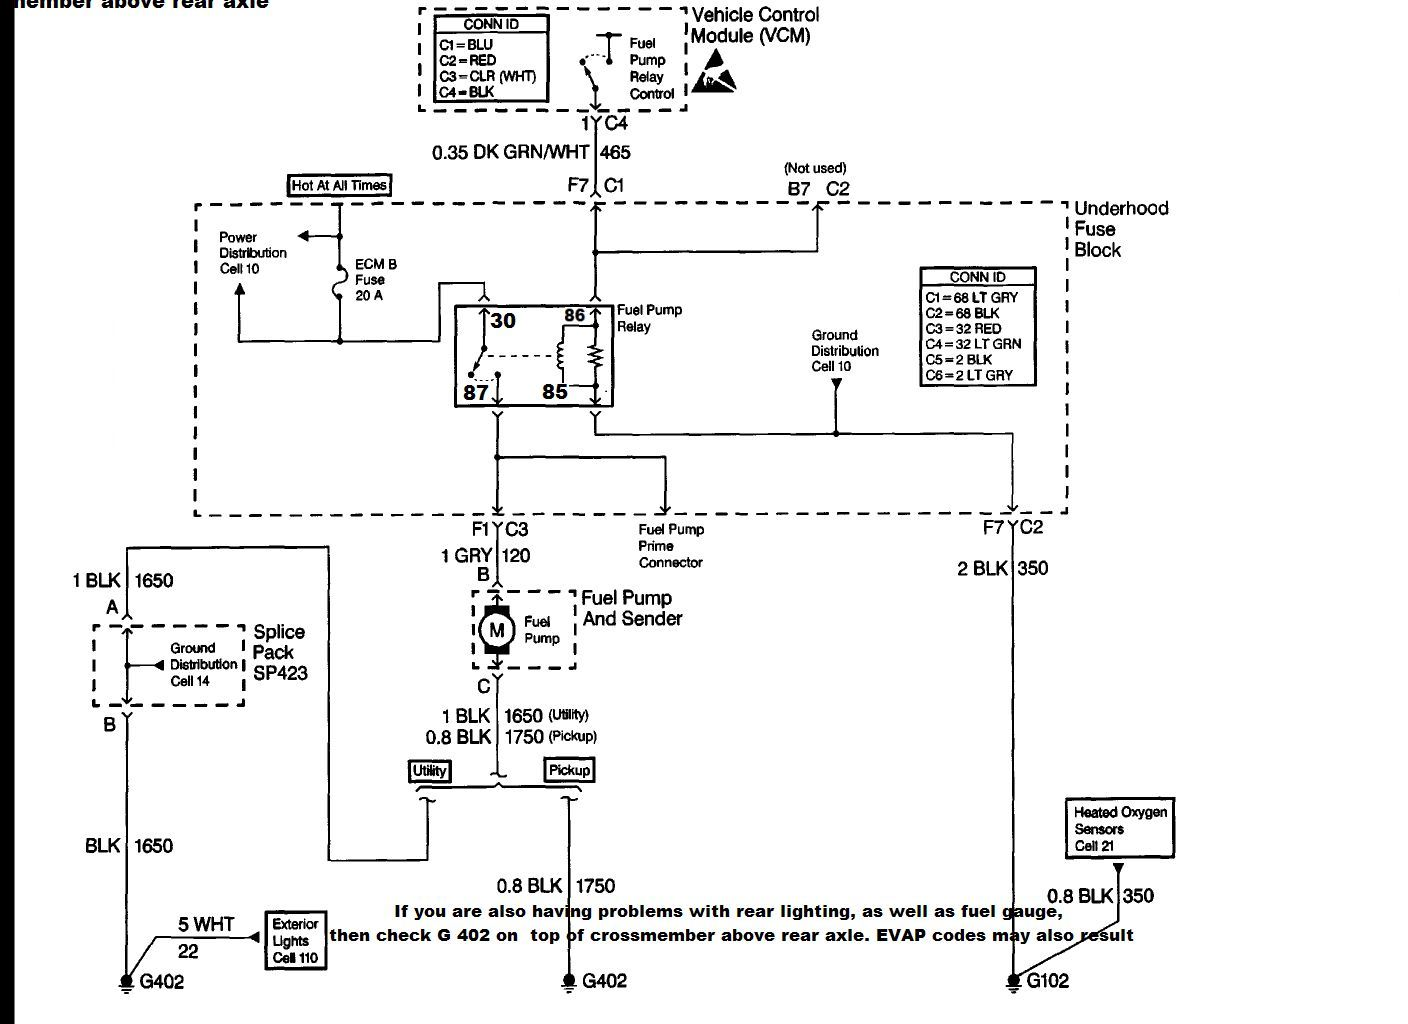 hight resolution of 2000 chevy blazer fuel pump diagram wiring diagram compilation 2000 chevy blazer fuel system diagram